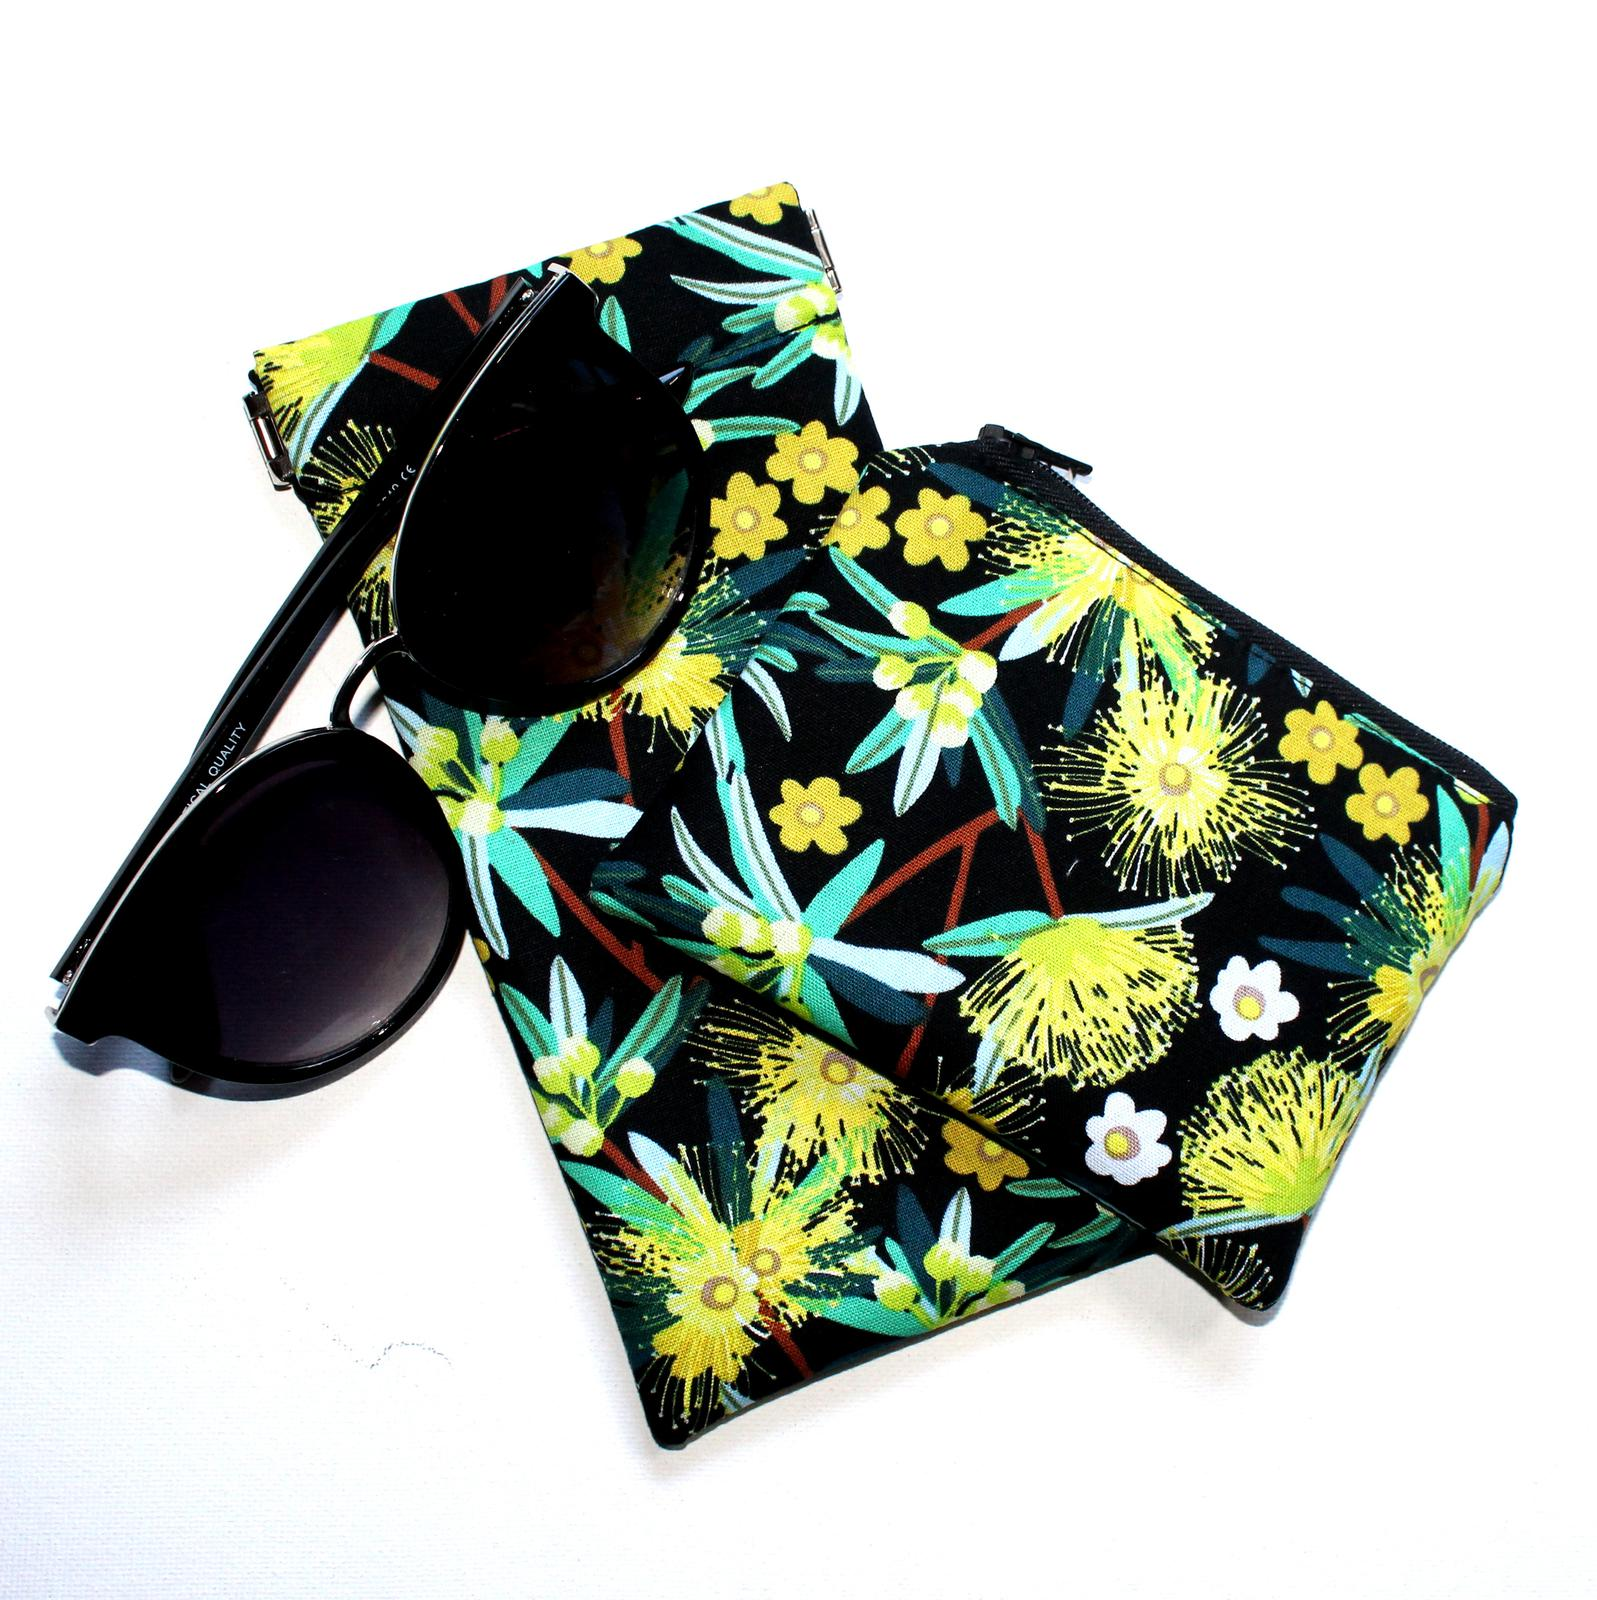 Coin purse and sunglass pouch sets